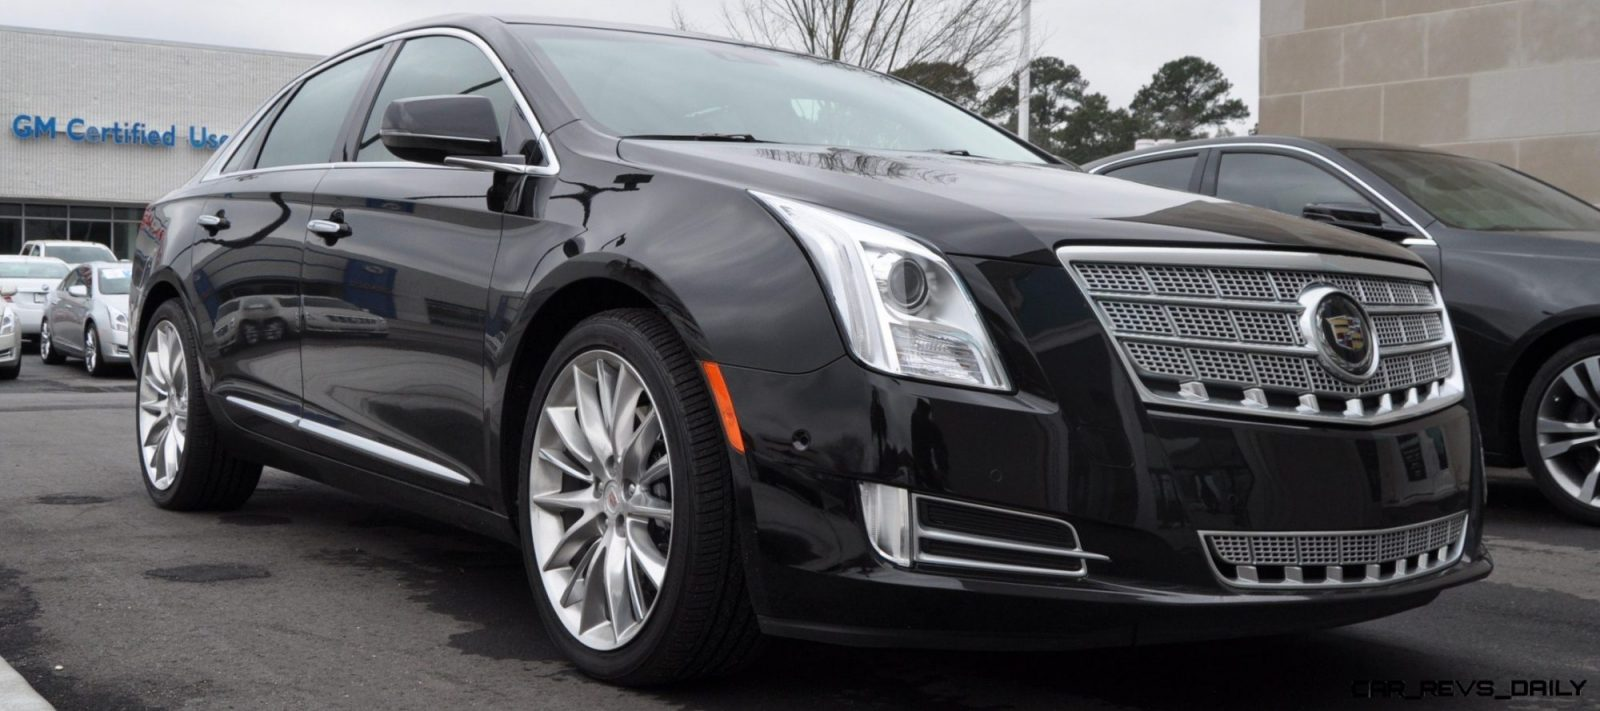 2014 Cadillac XTS4 Platinum Vsport -- First Drive Video and Photos 8